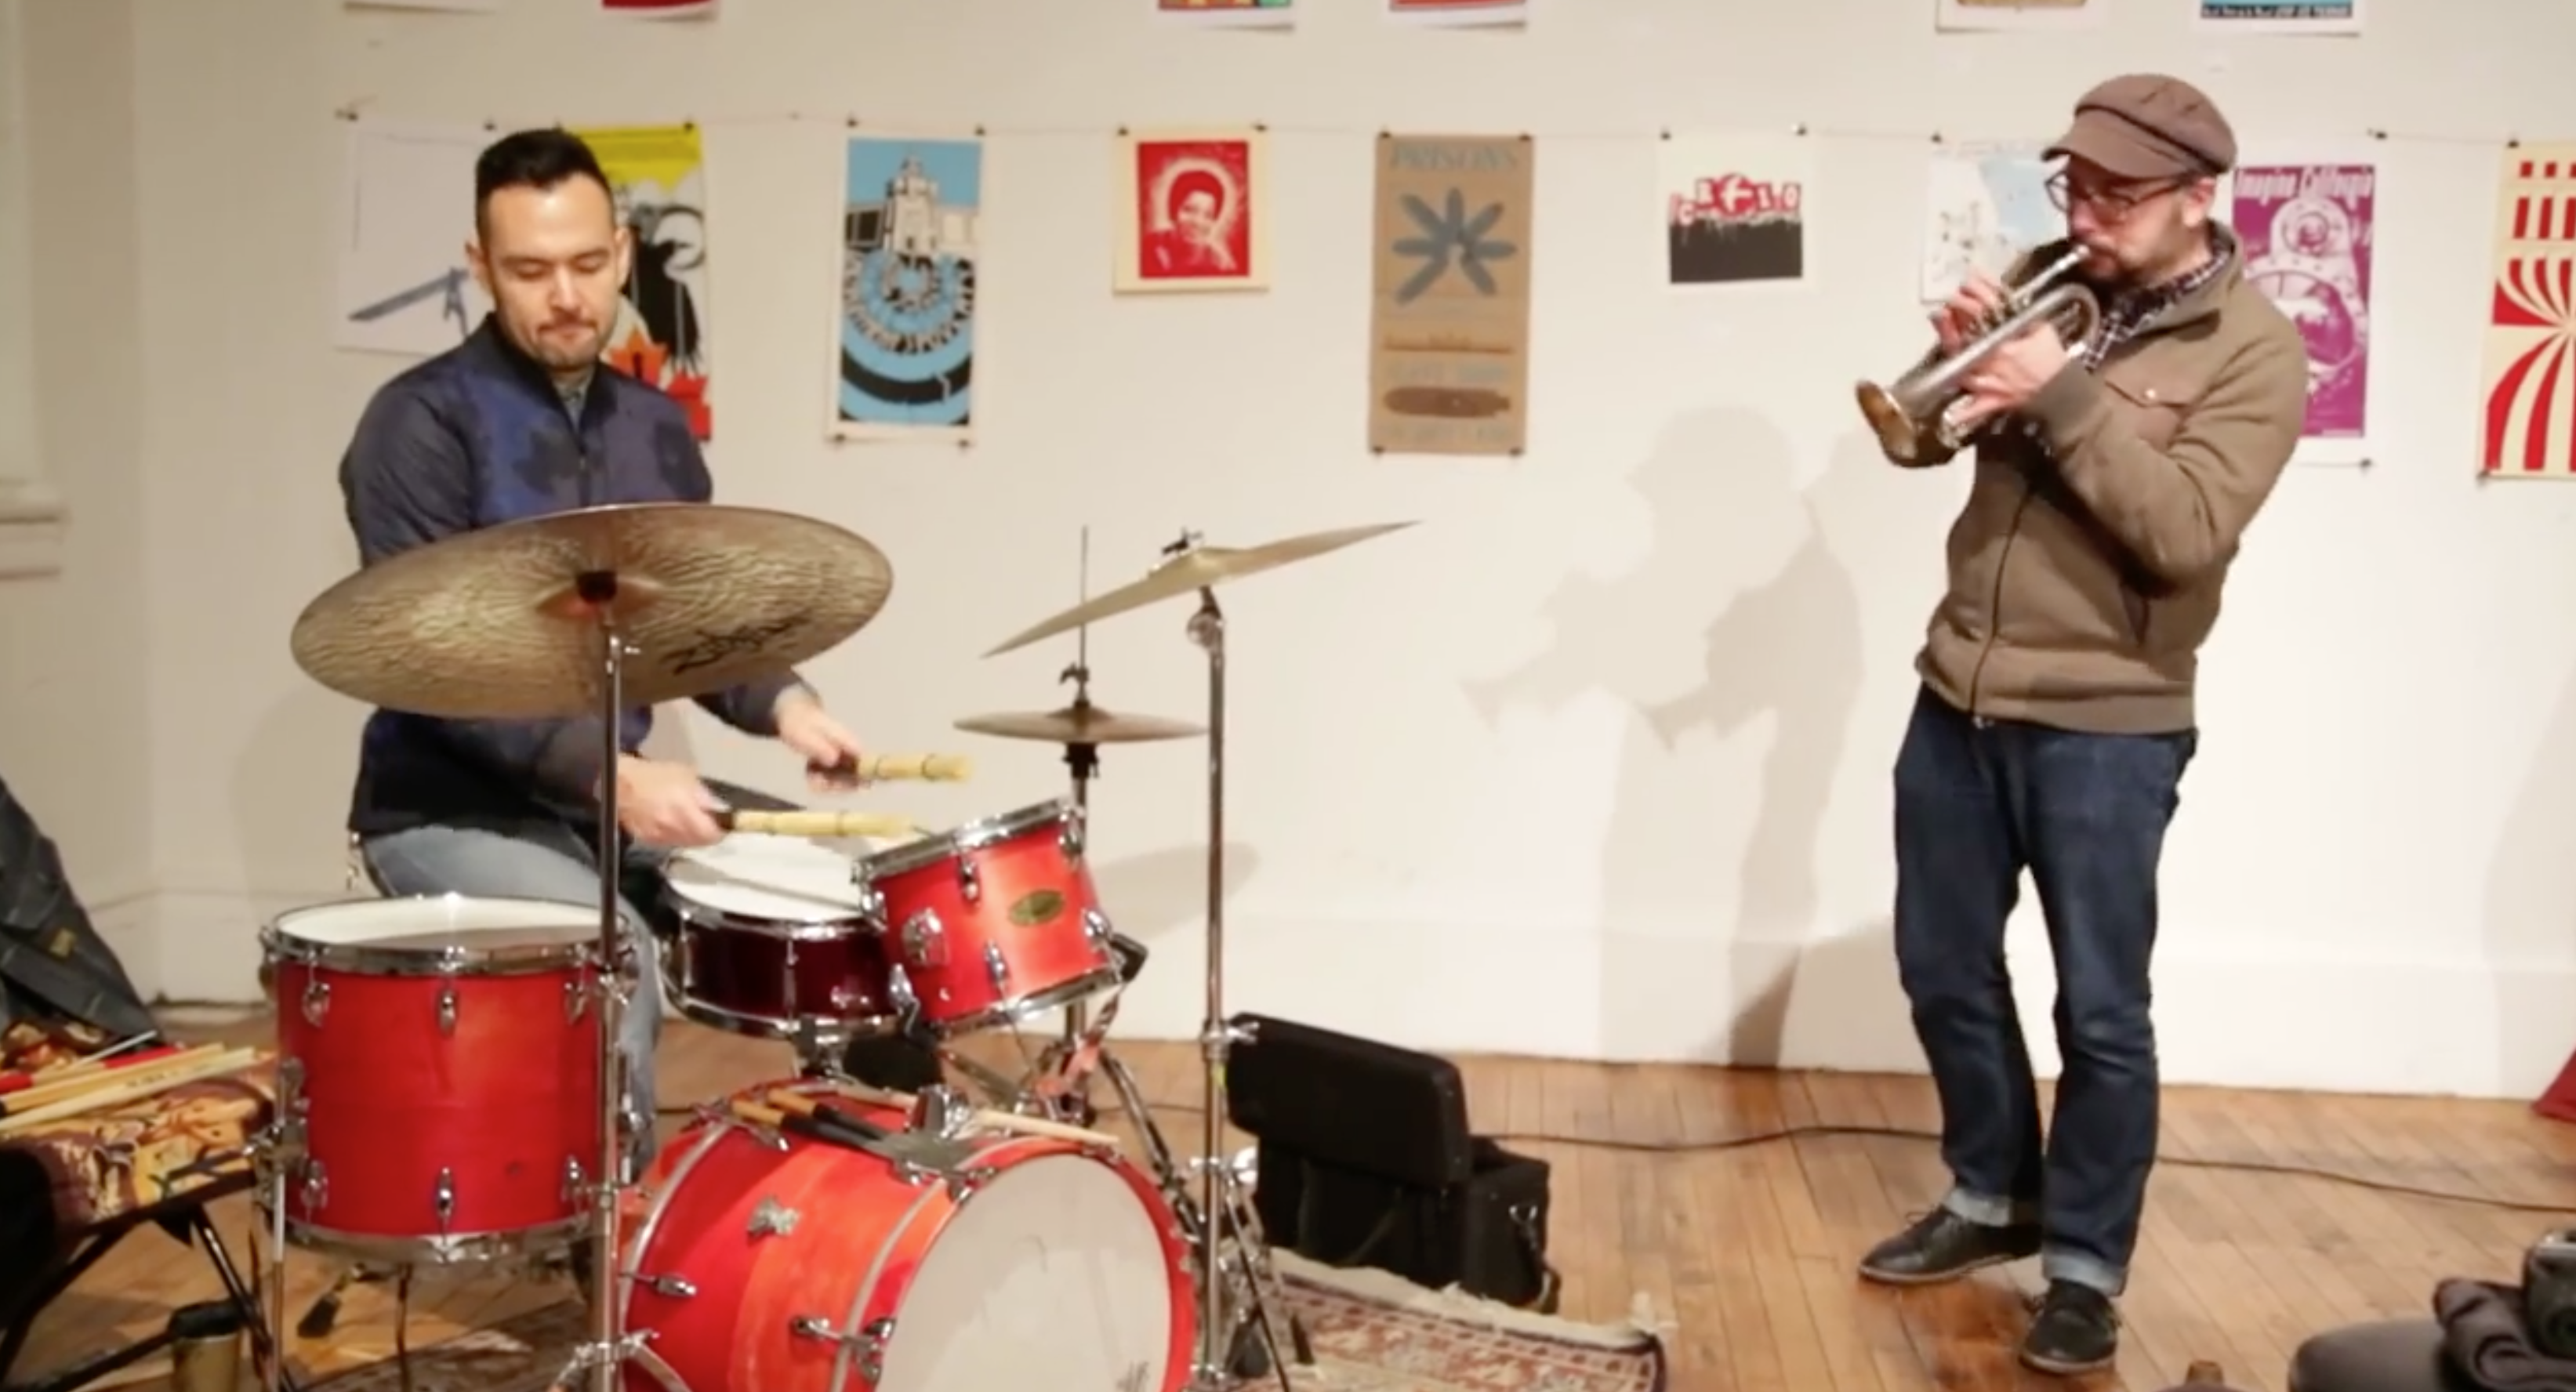 Taylor Ho Bynum \ Tomas Fujiwara Duo With J.D. Parran @ Arts For Art (Not A Police State) [Jan – 19]